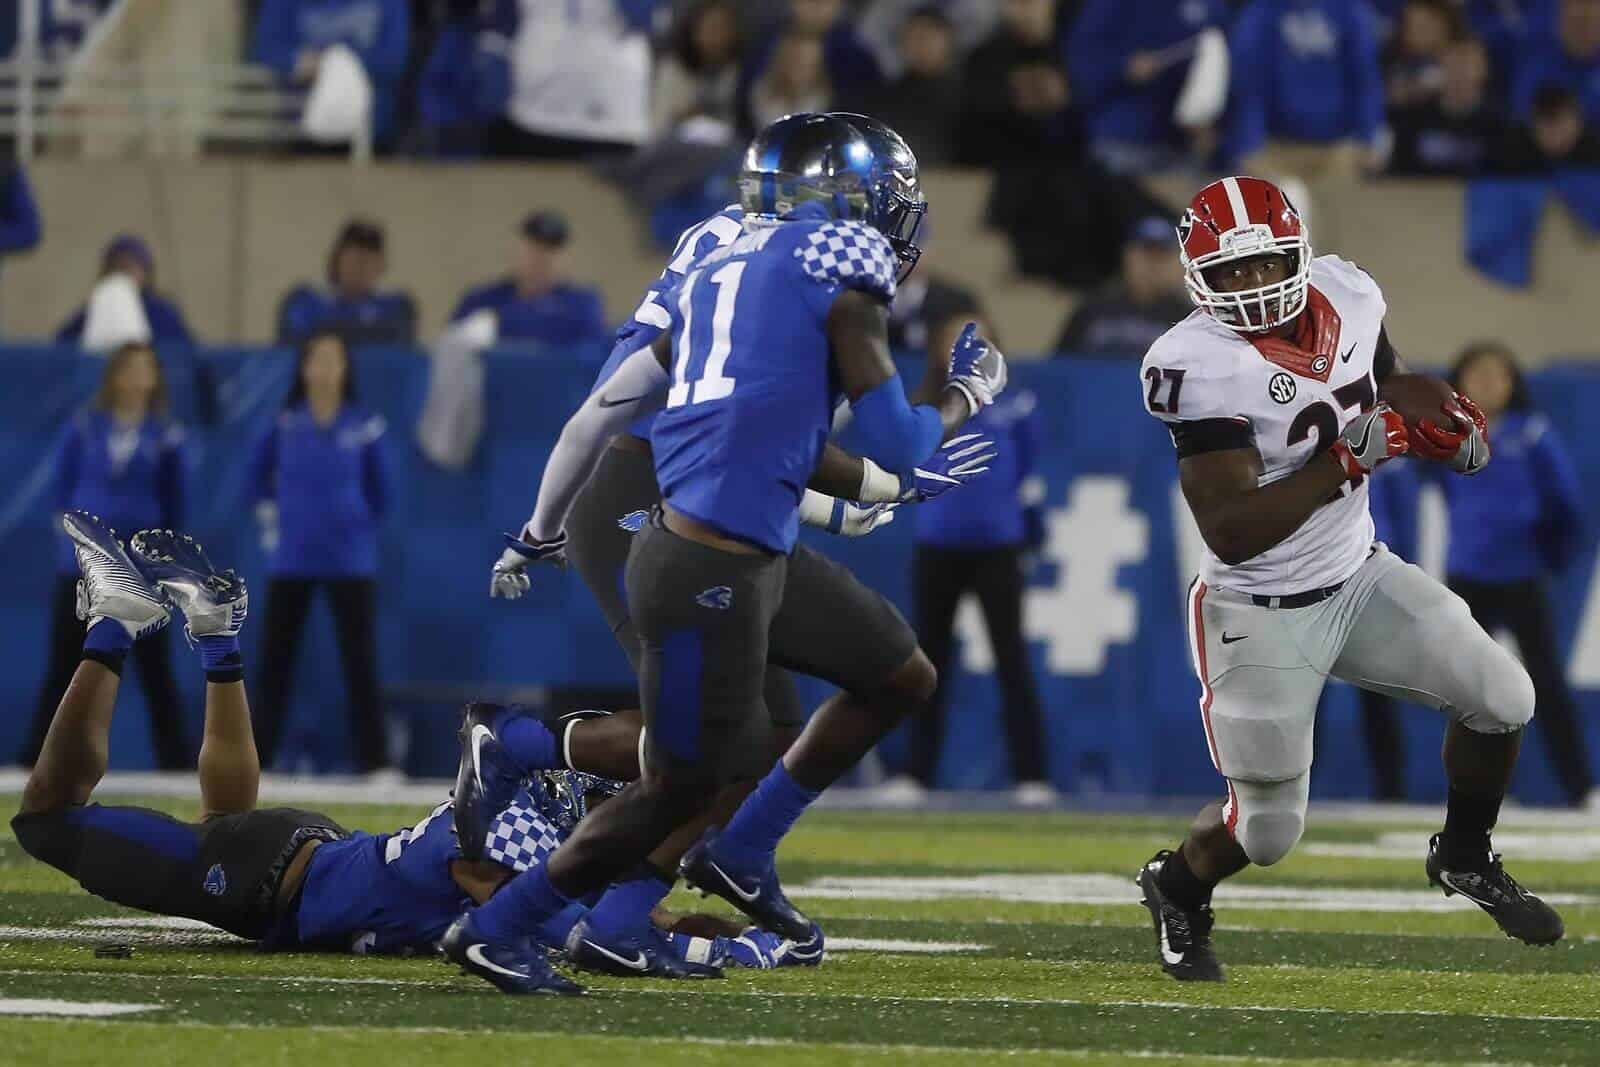 UGA Football: UK